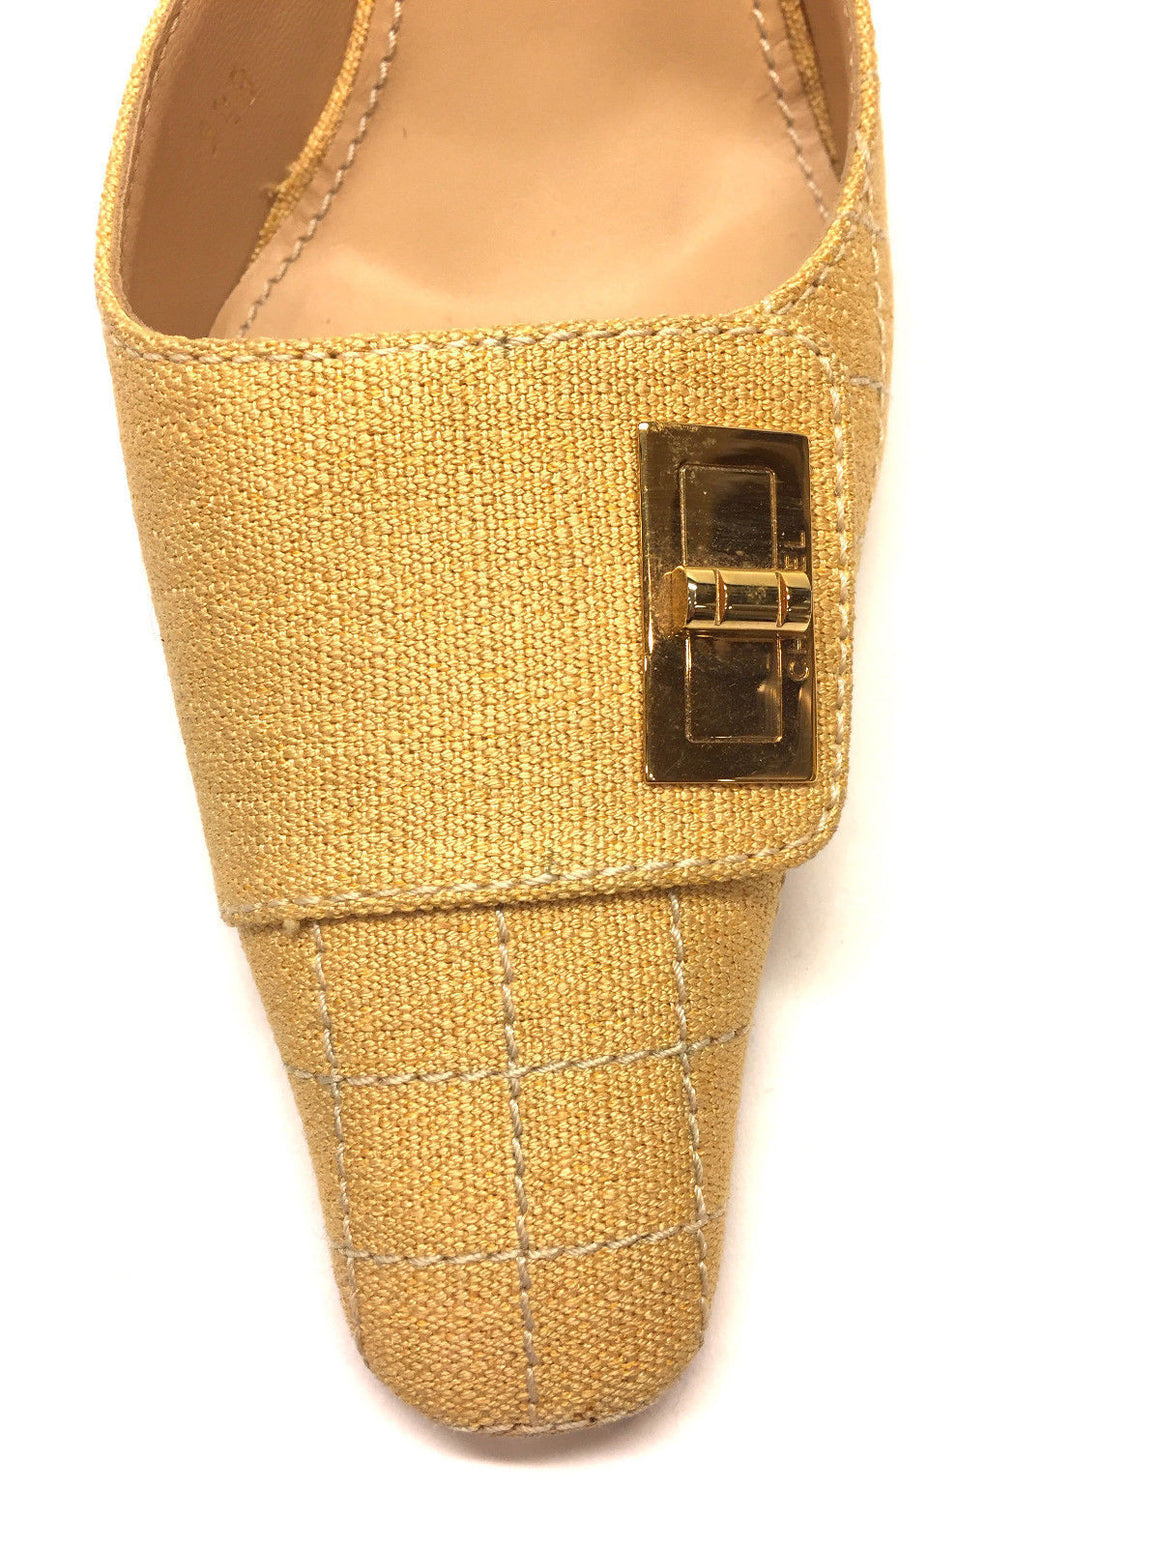 bisbiz.com CHANEL  Vintage  Yellow Quilt Patterned Canvas Gold Turn-Lock Heel Mules Sandals  Size: 9.5B - Bis Luxury Resale